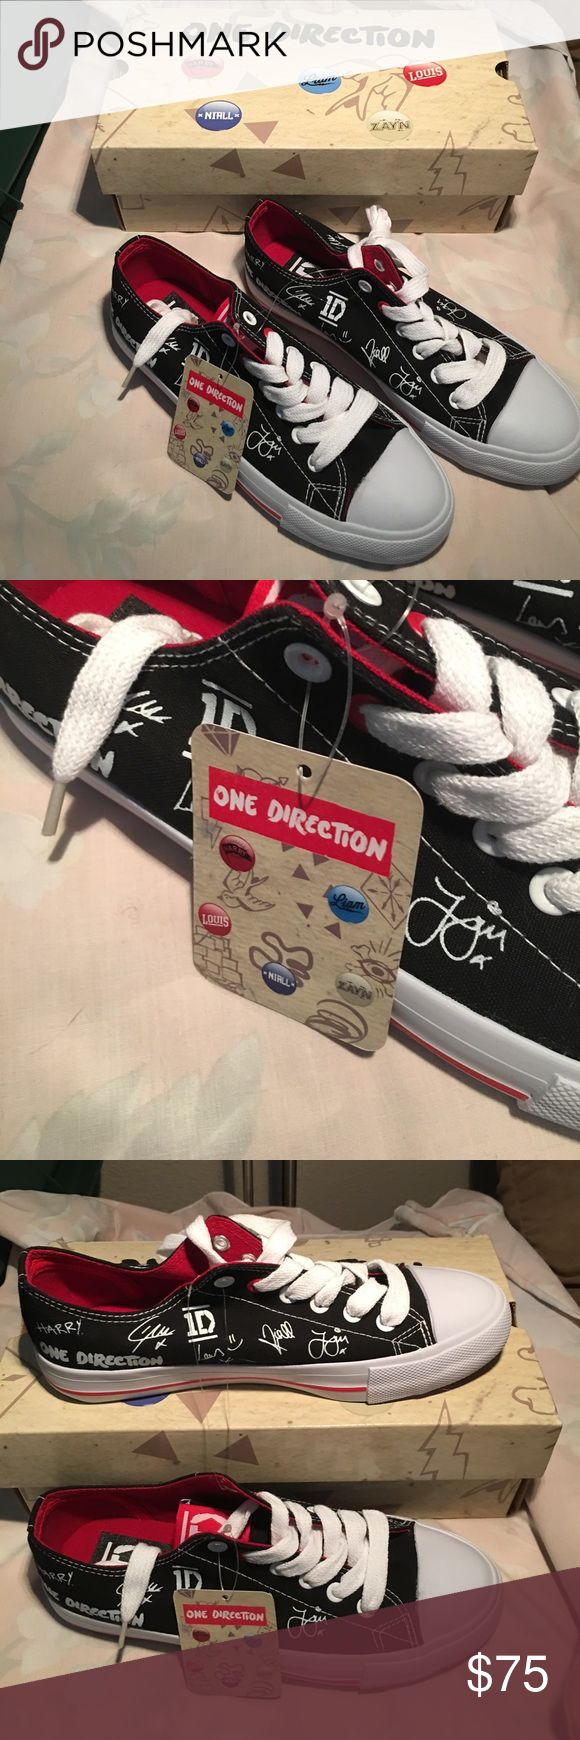 """🆕 ONE DIRECTION AUTOGRAPH SNEAKERS - RARE - NWT! Brand new with tags and in the box """"One Direction"""" Collector sneakers!  Never even been tried on or walked in!  Made in Belgium!  Has Harry's autograph as well! One Direction Shoes Sneakers"""